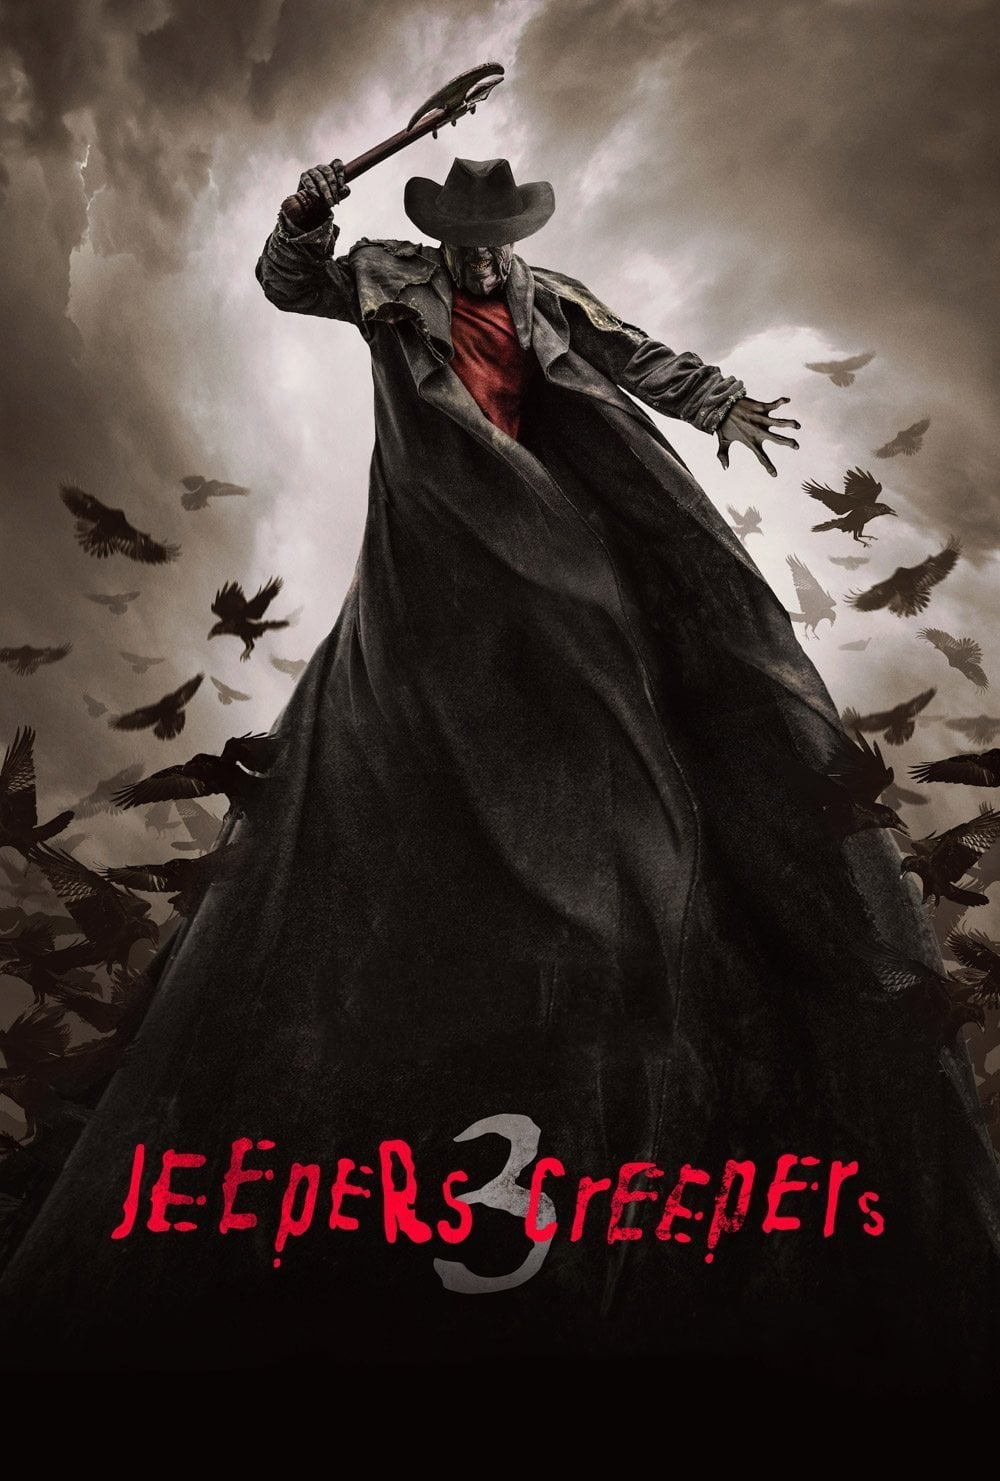 image for Jeepers Creepers 3